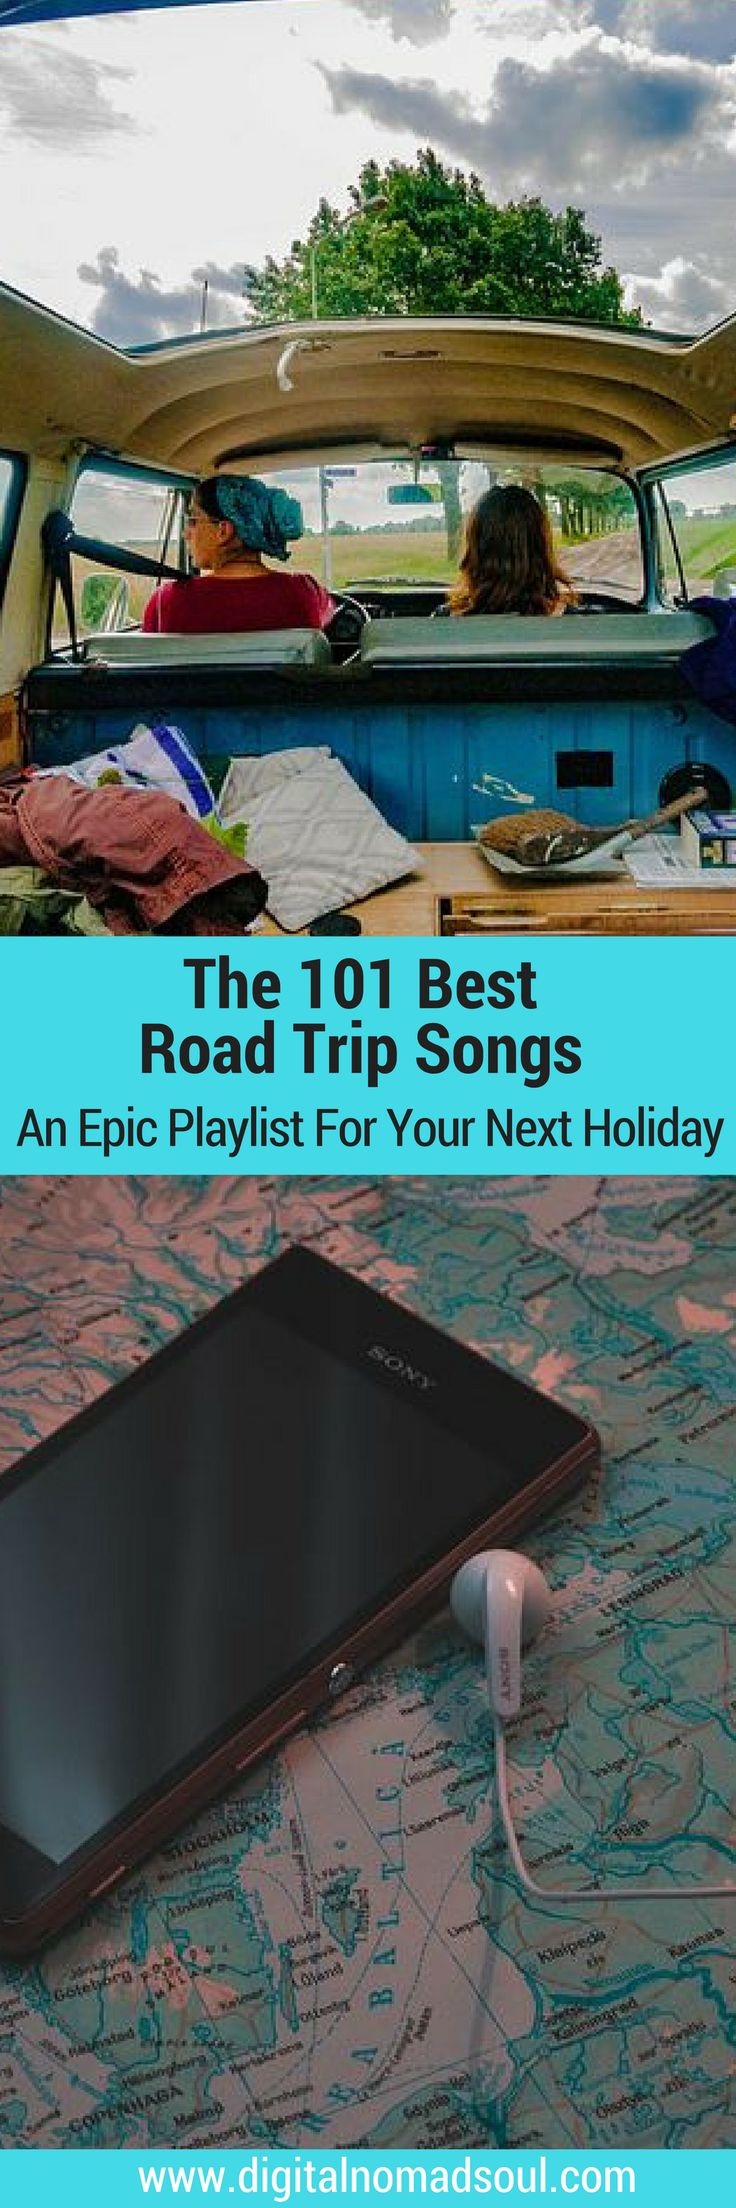 Check out this incredible list with the greatest road trip songs of all times. An epic playlist for your next vacation!